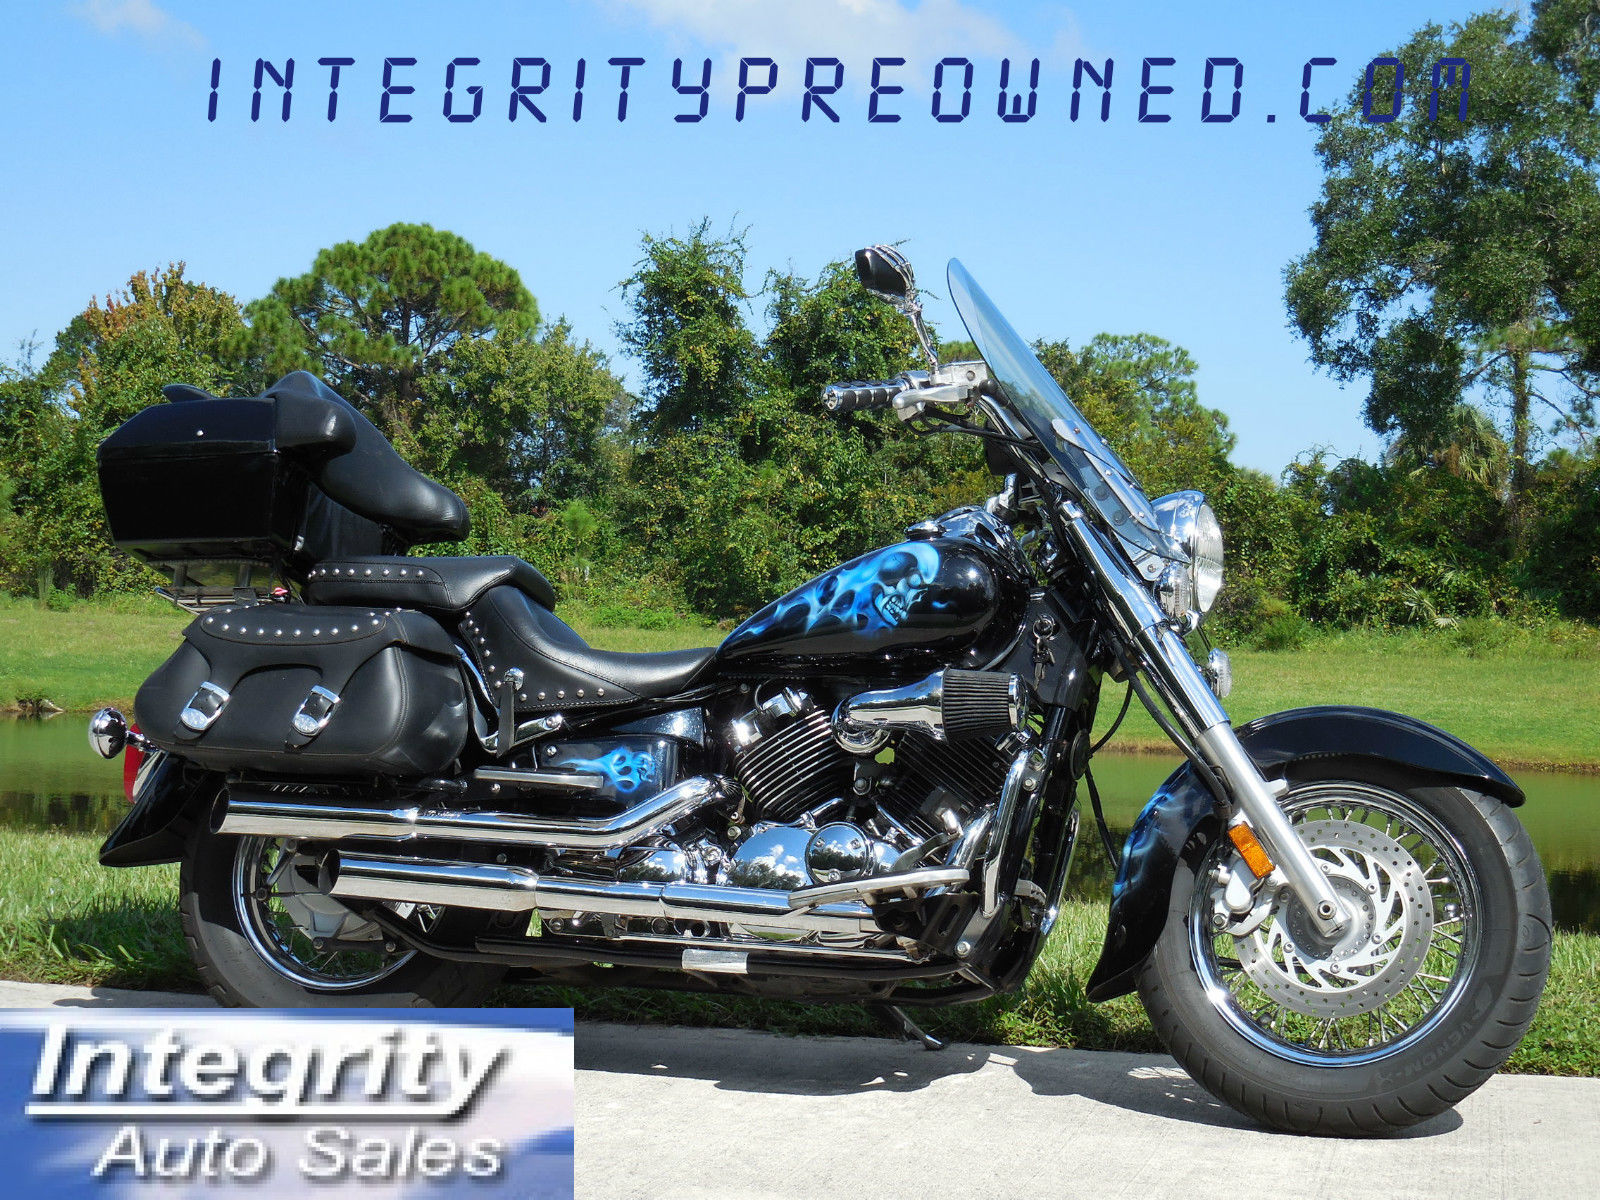 2012 v star 1300 custom with 2005 Yamaha V Star 3 on 1985 Yamaha Xs Xs650 Cafe Custom Bobber Chopper moreover Index furthermore 2012 05 27 archive together with 6771659391 also Watch.